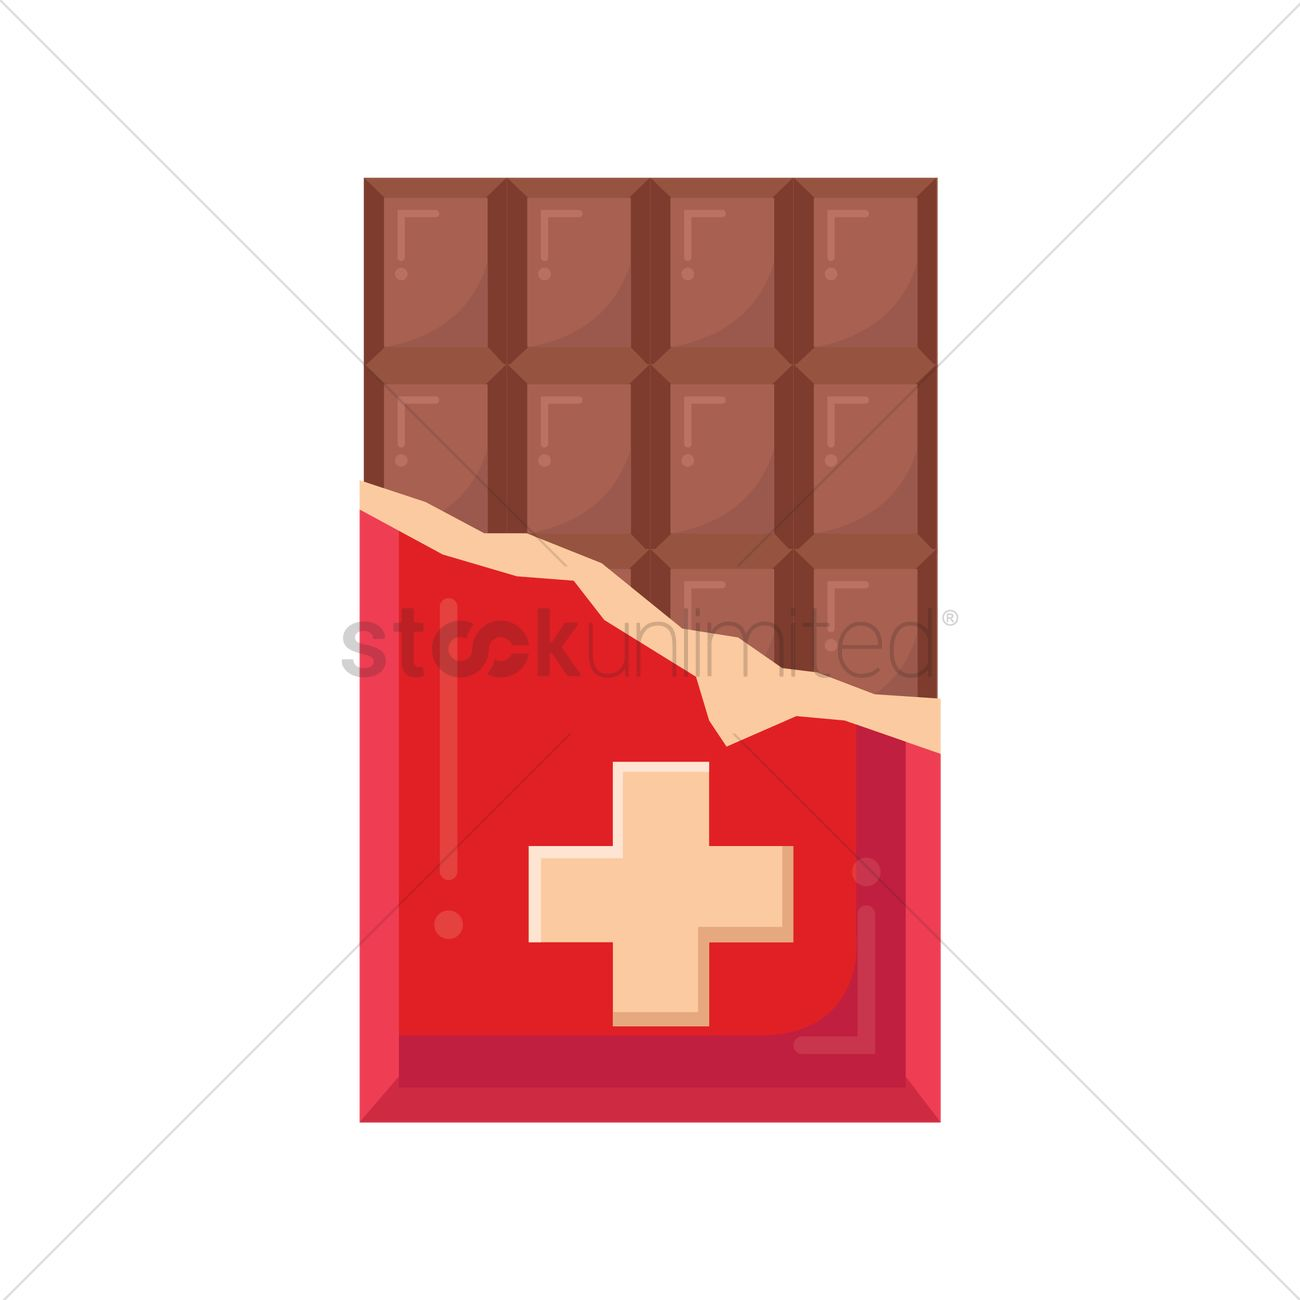 Swiss Chocolate Png - Swiss chocolate Vector Image - 2033812 | StockUnlimited